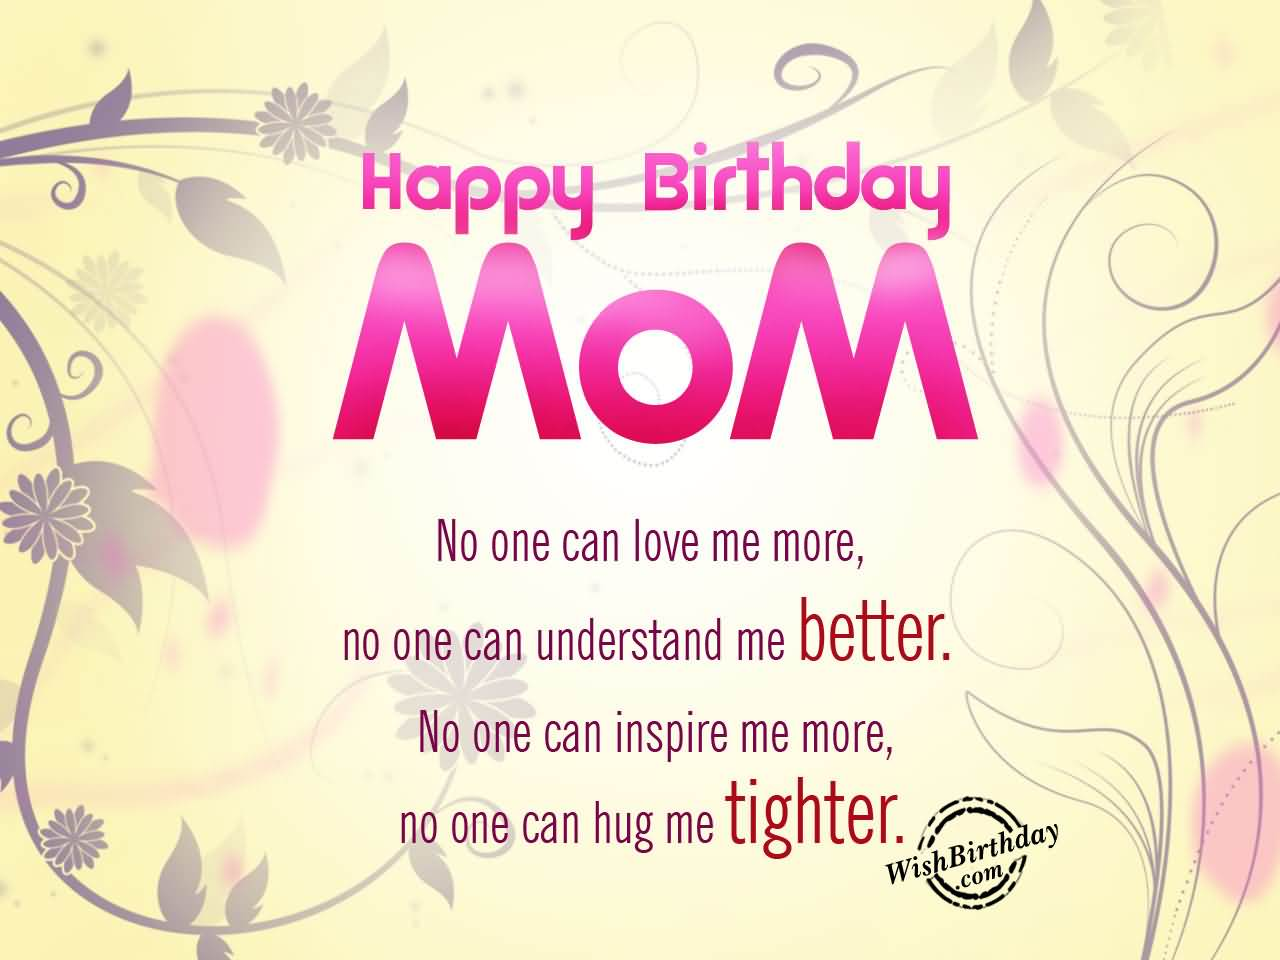 Happy Birthdy Mom No One Can Love Me More